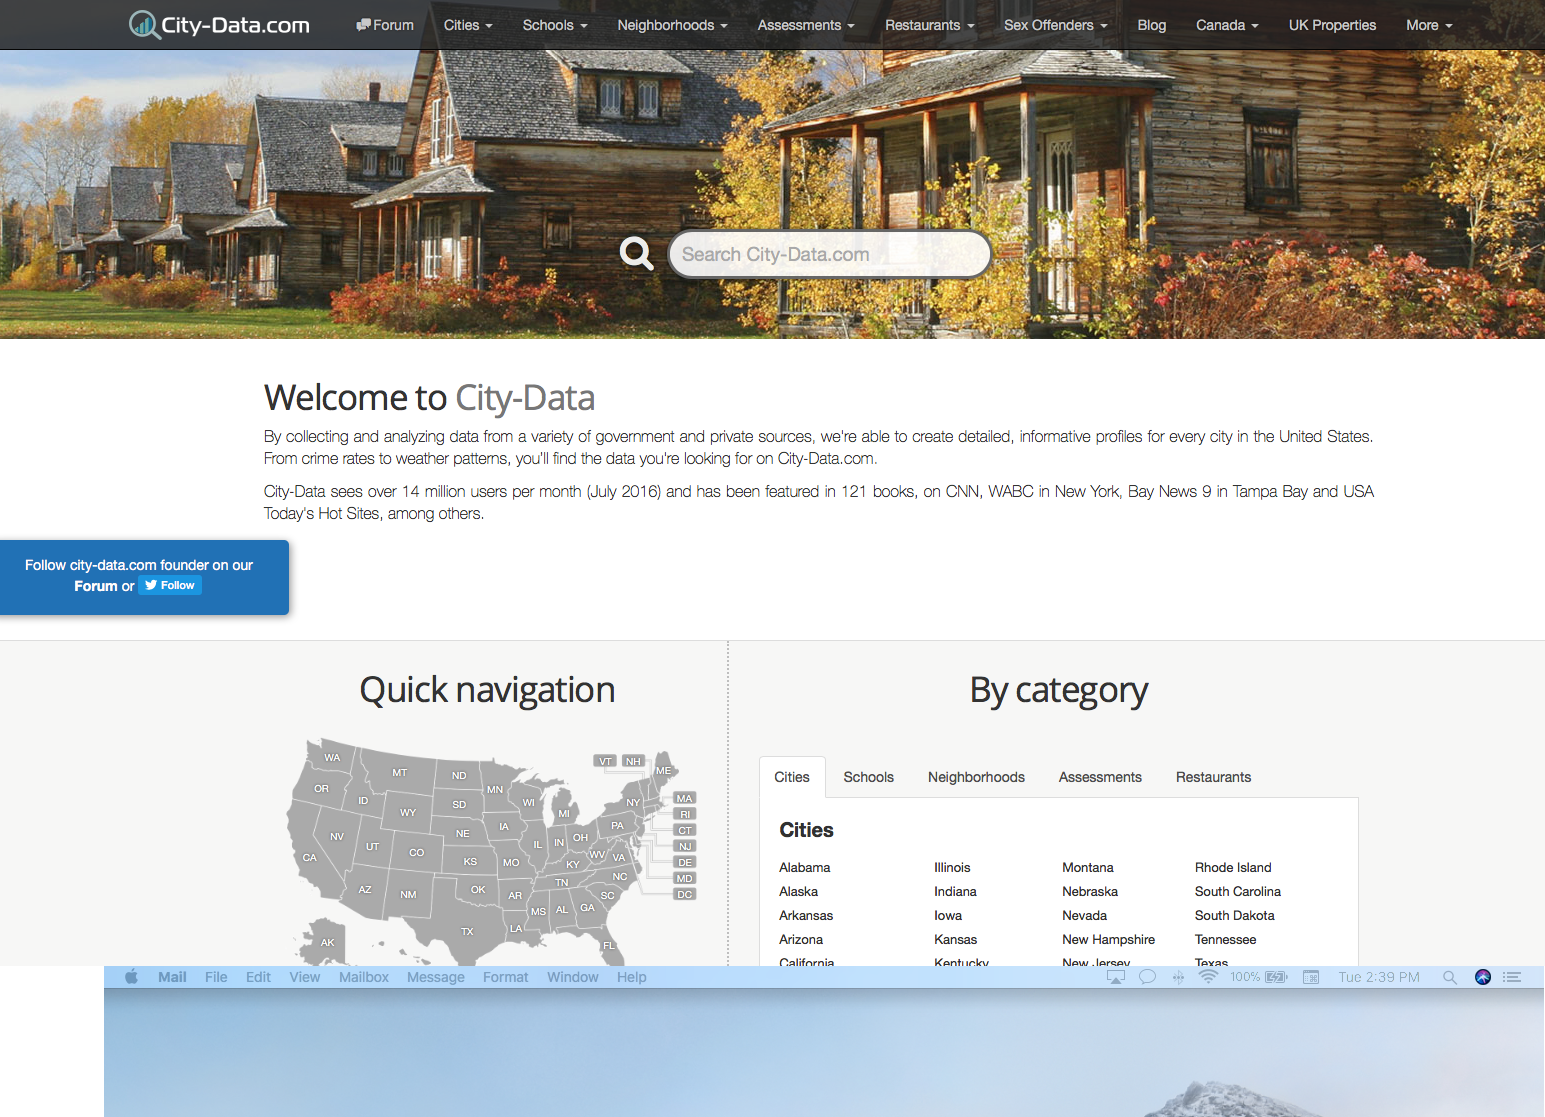 City Data.com website